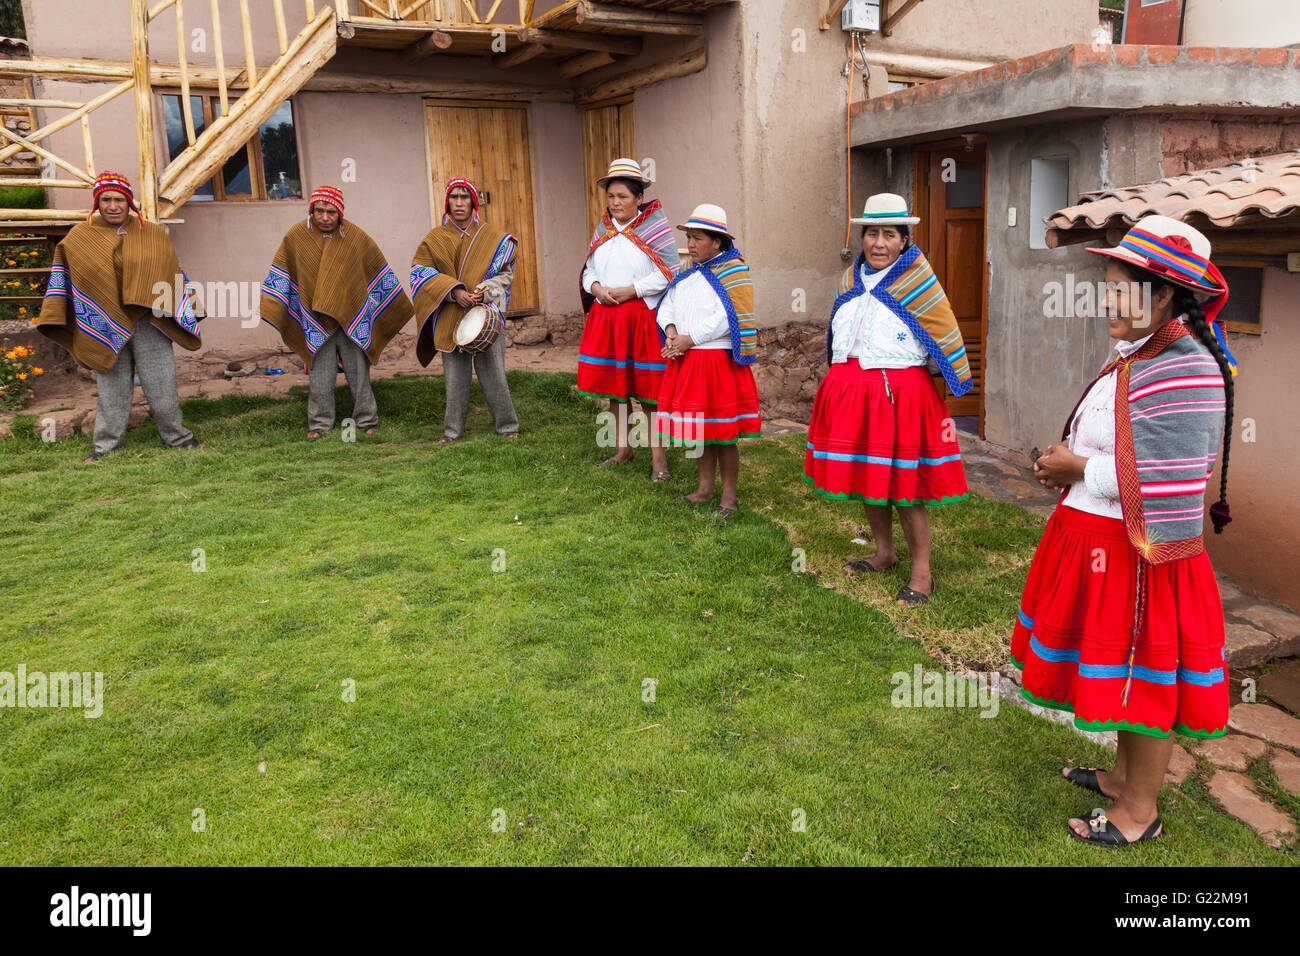 Welcoming family in the Andean village of Misminay, Peru - Stock Image